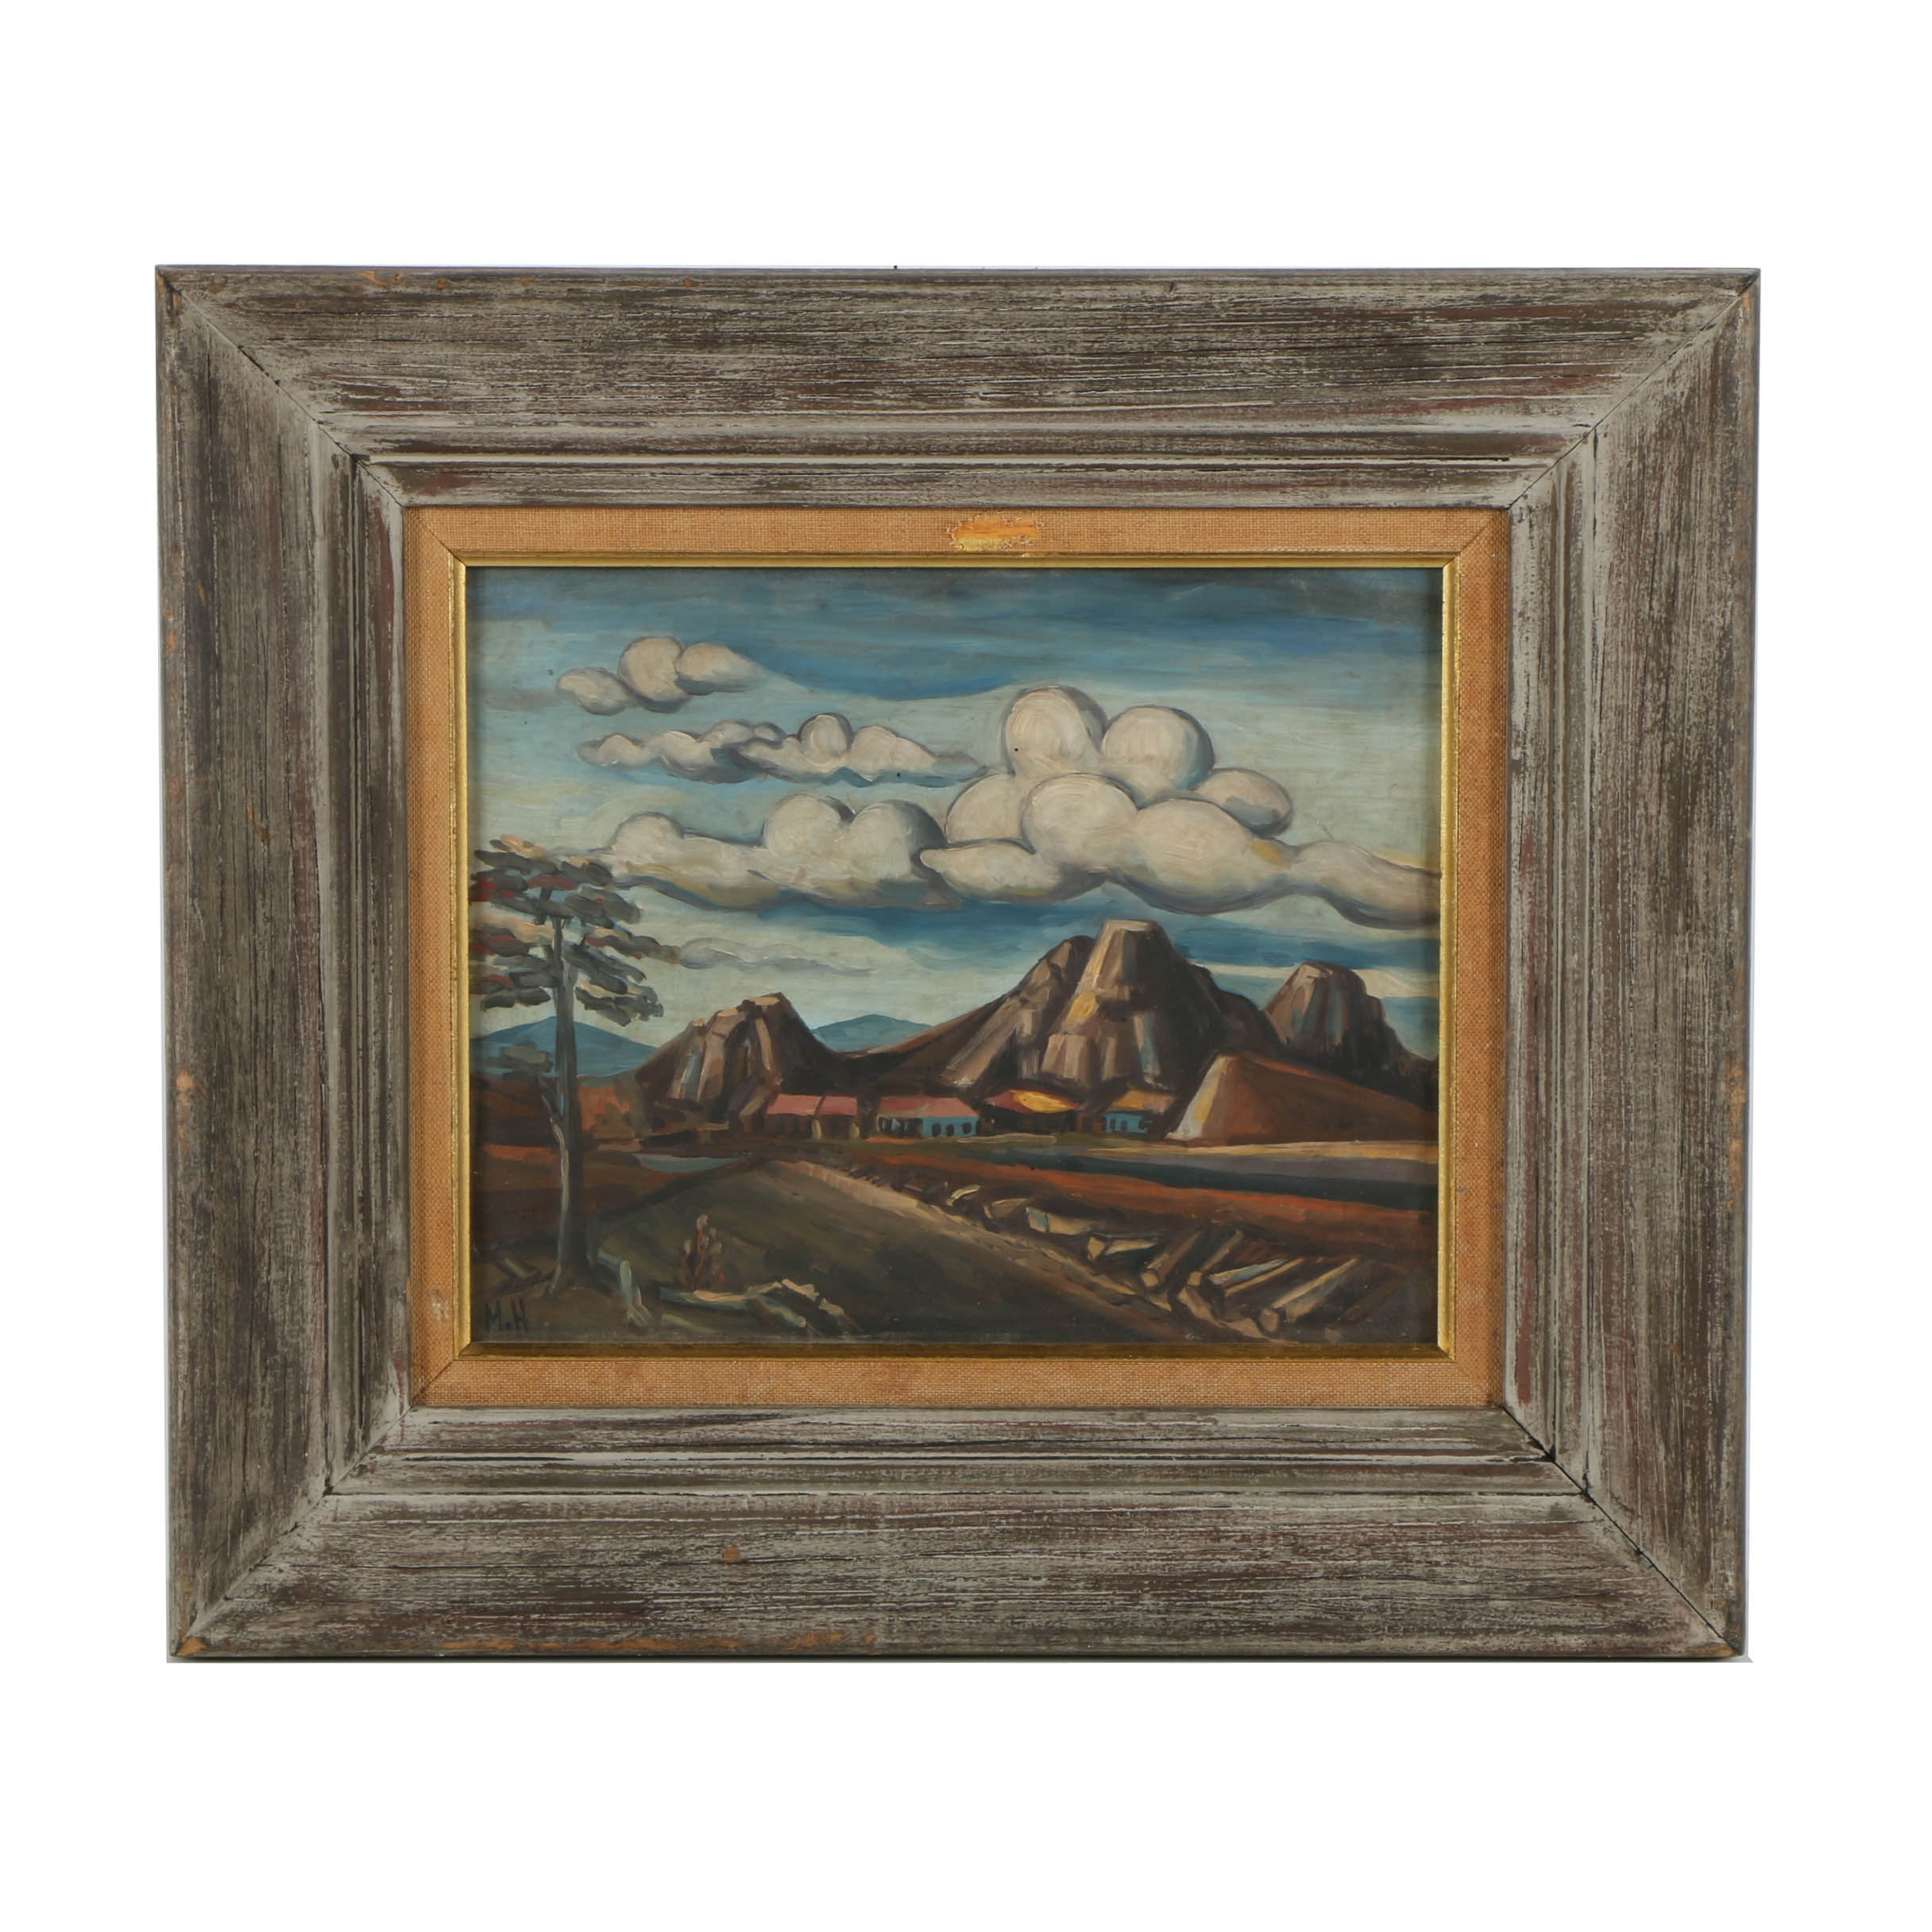 Oil Painting on Board of a Mountain Landscape